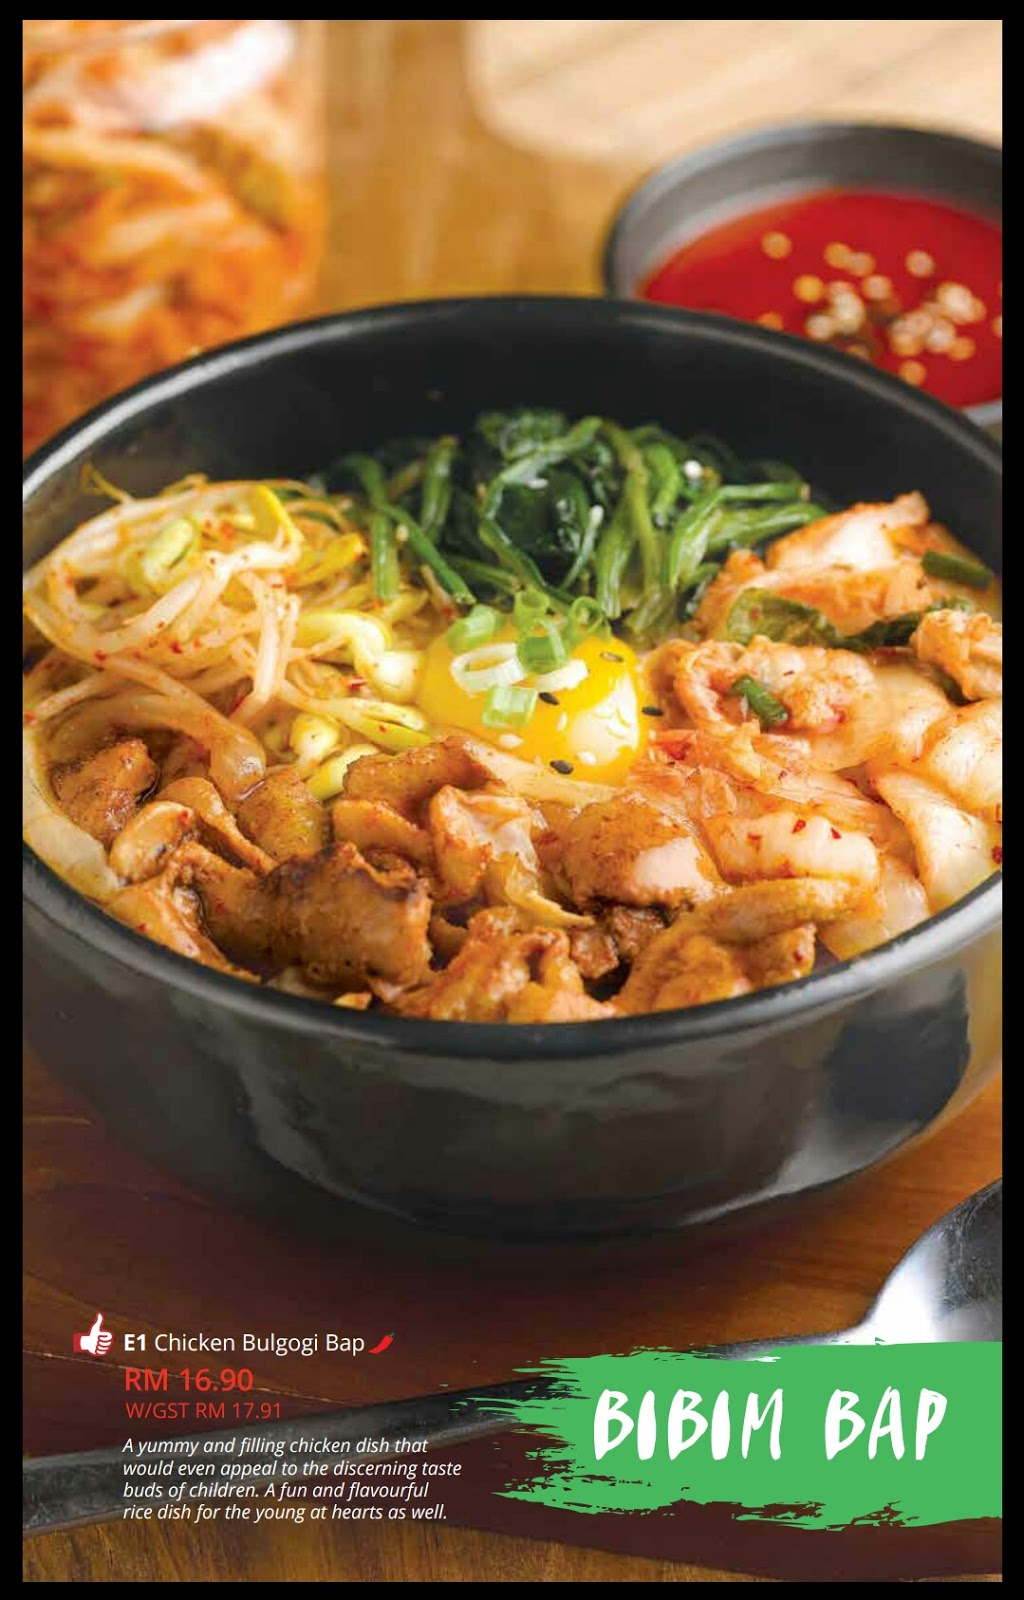 Seoul Garden Hot Pot - Sunway Putra Mall